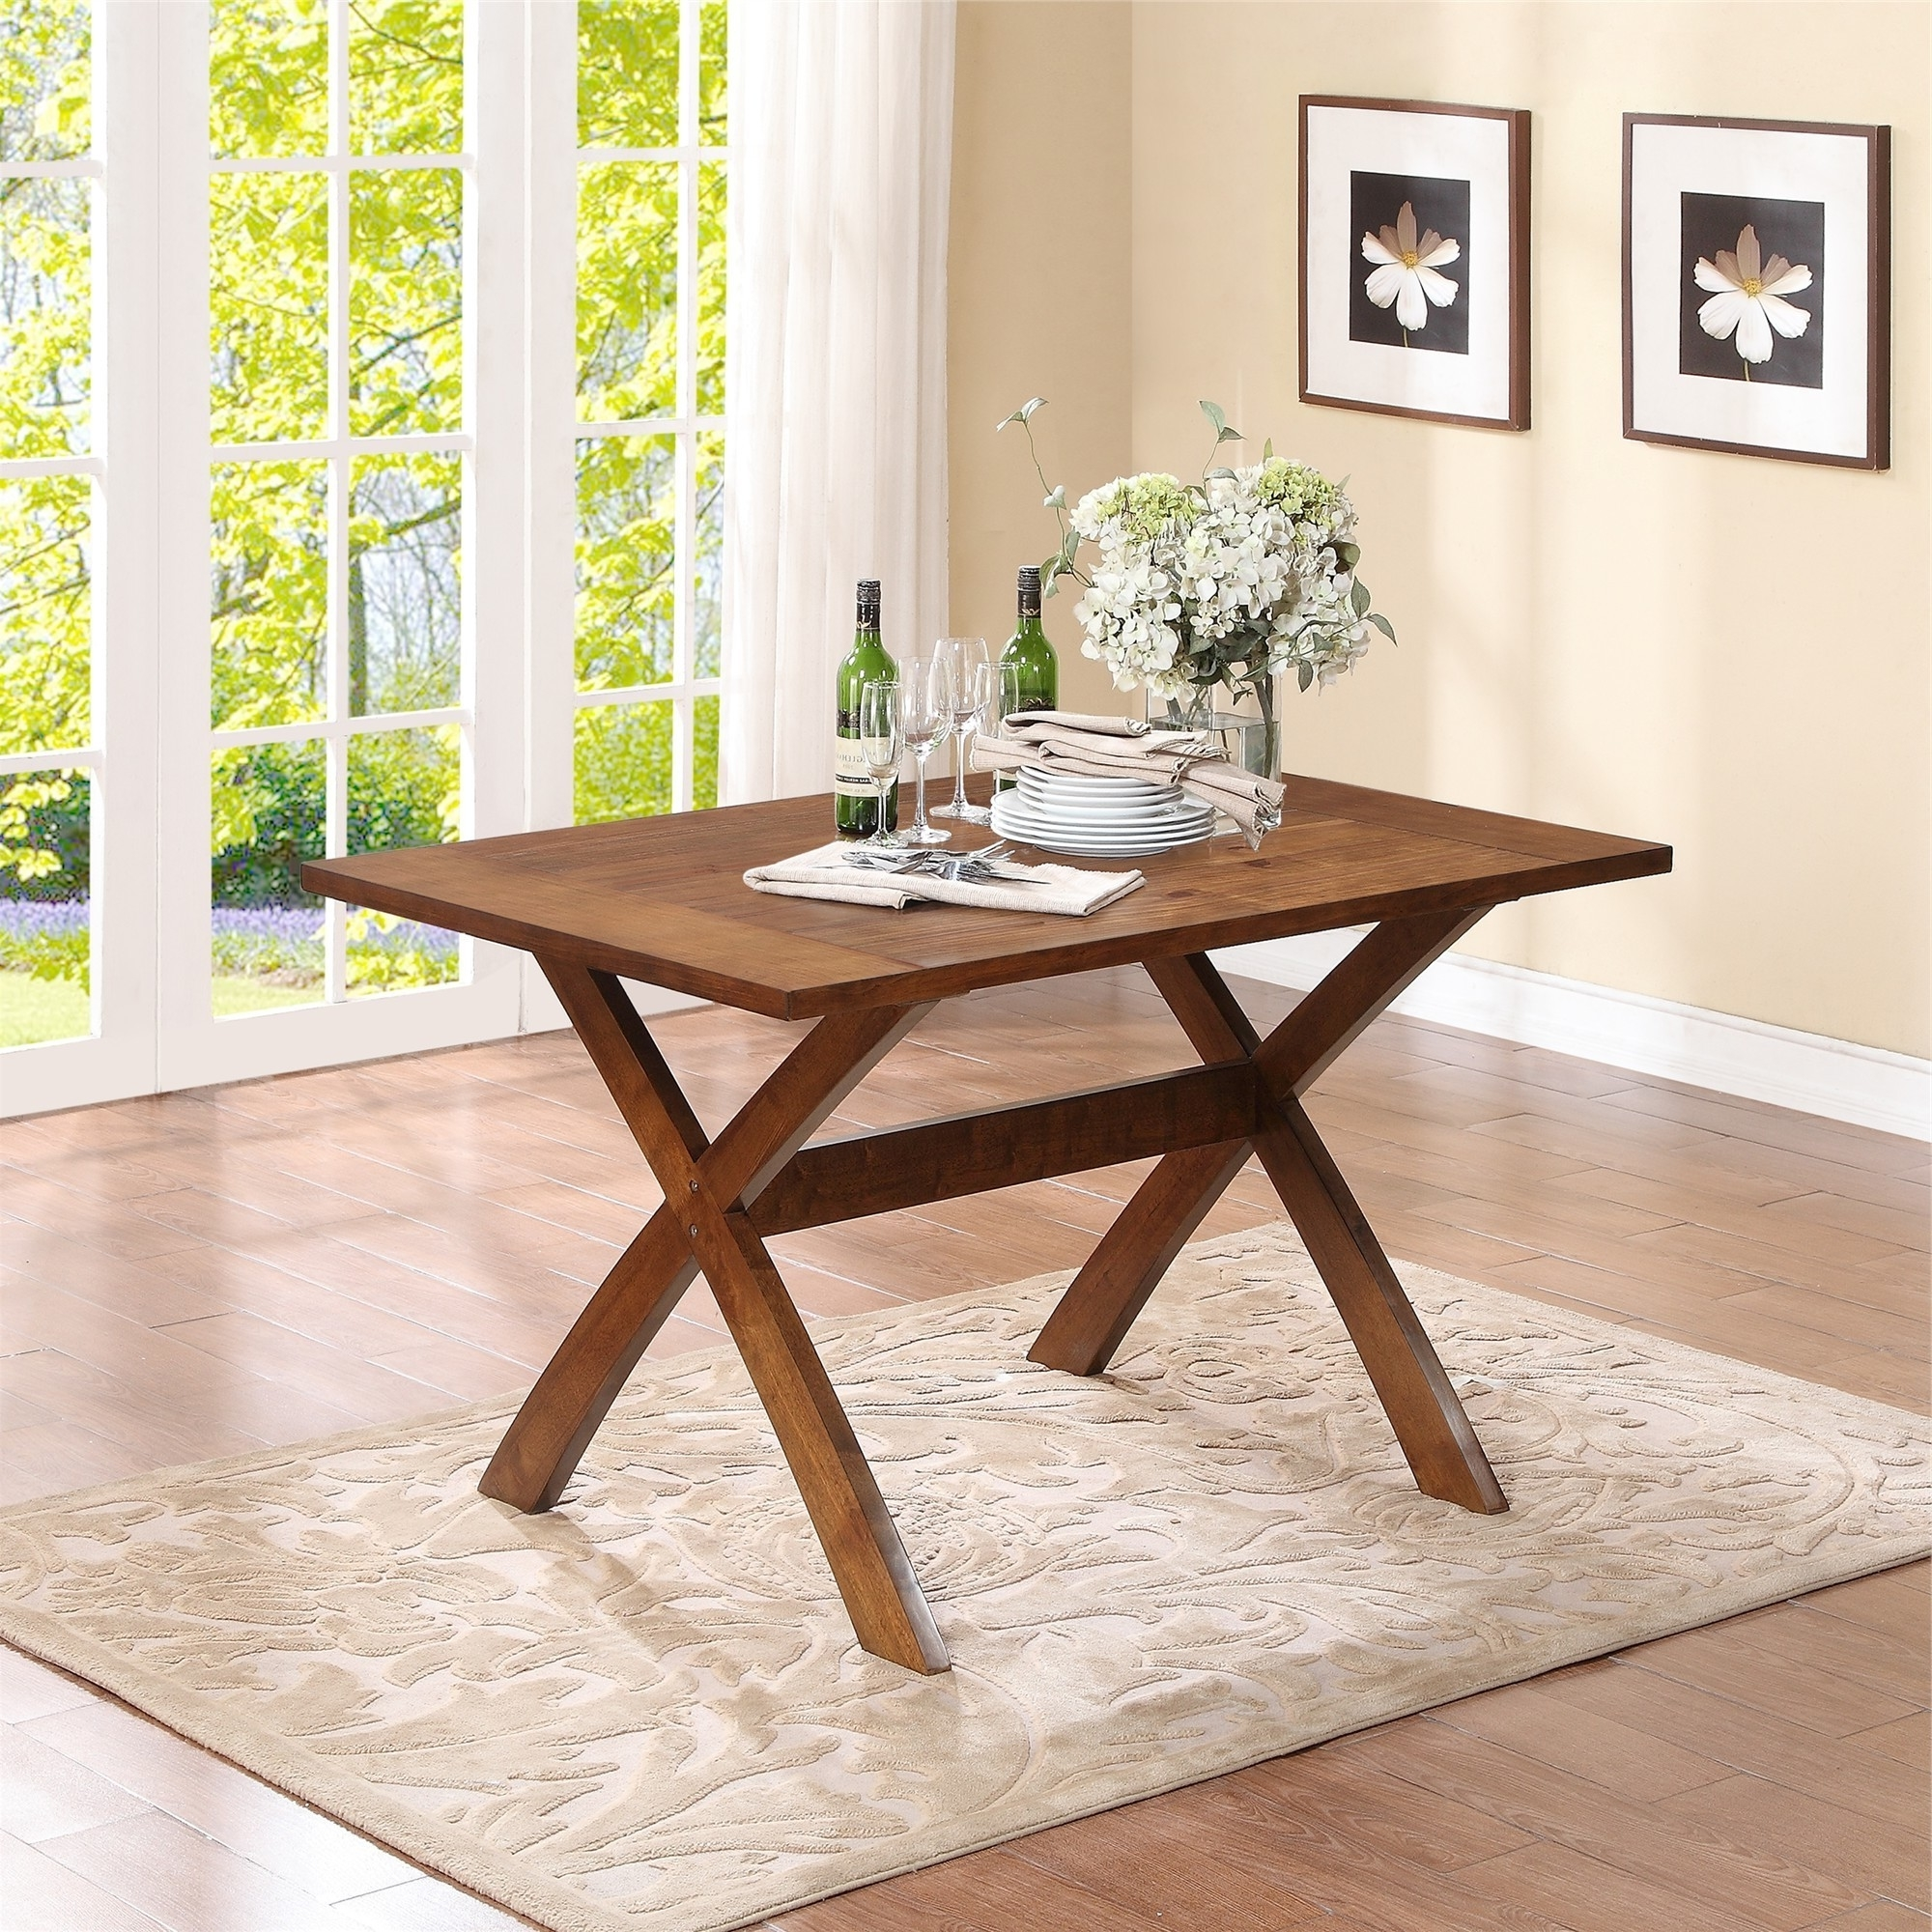 Sturdy Folding Wooden Table (Image 17 of 20)